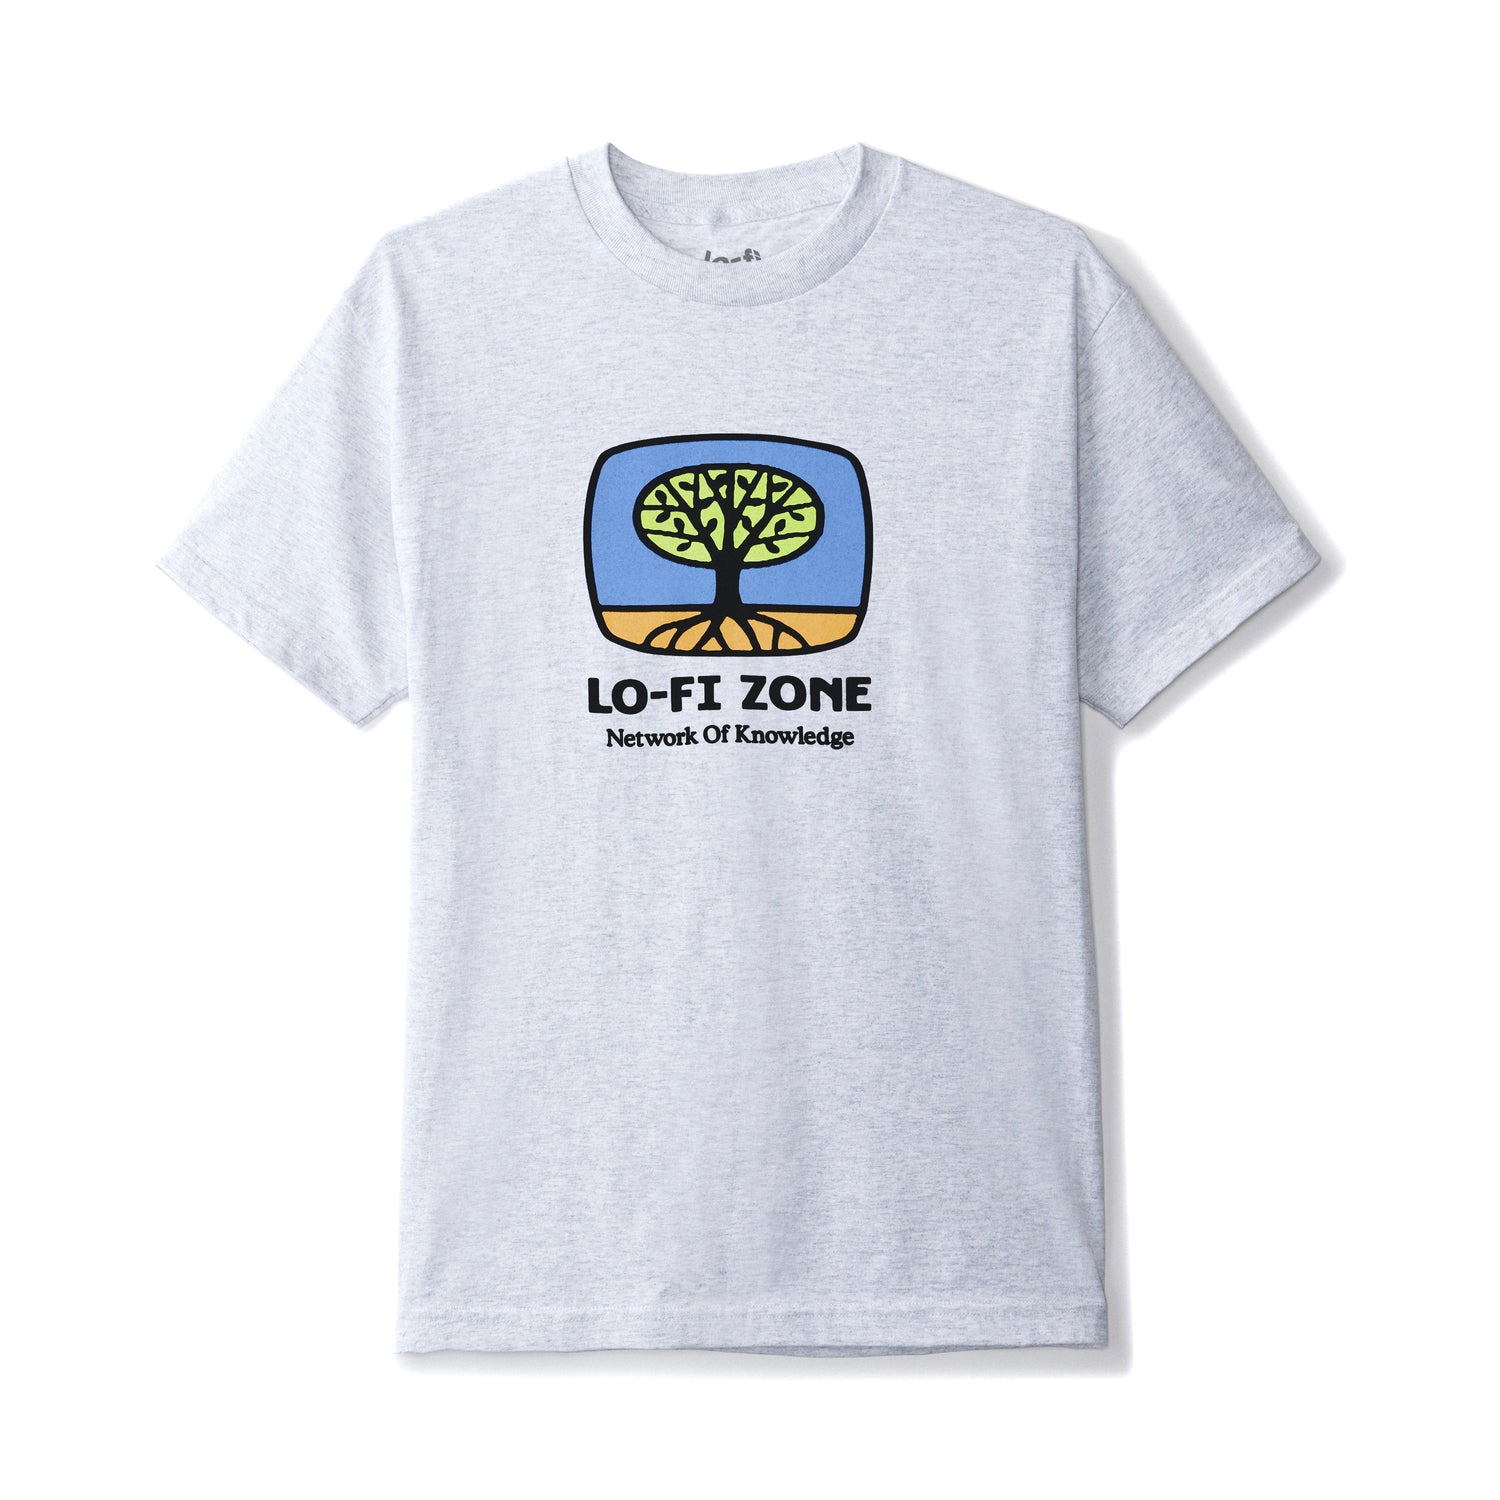 Network of Knowledge Tee, Ash Grey